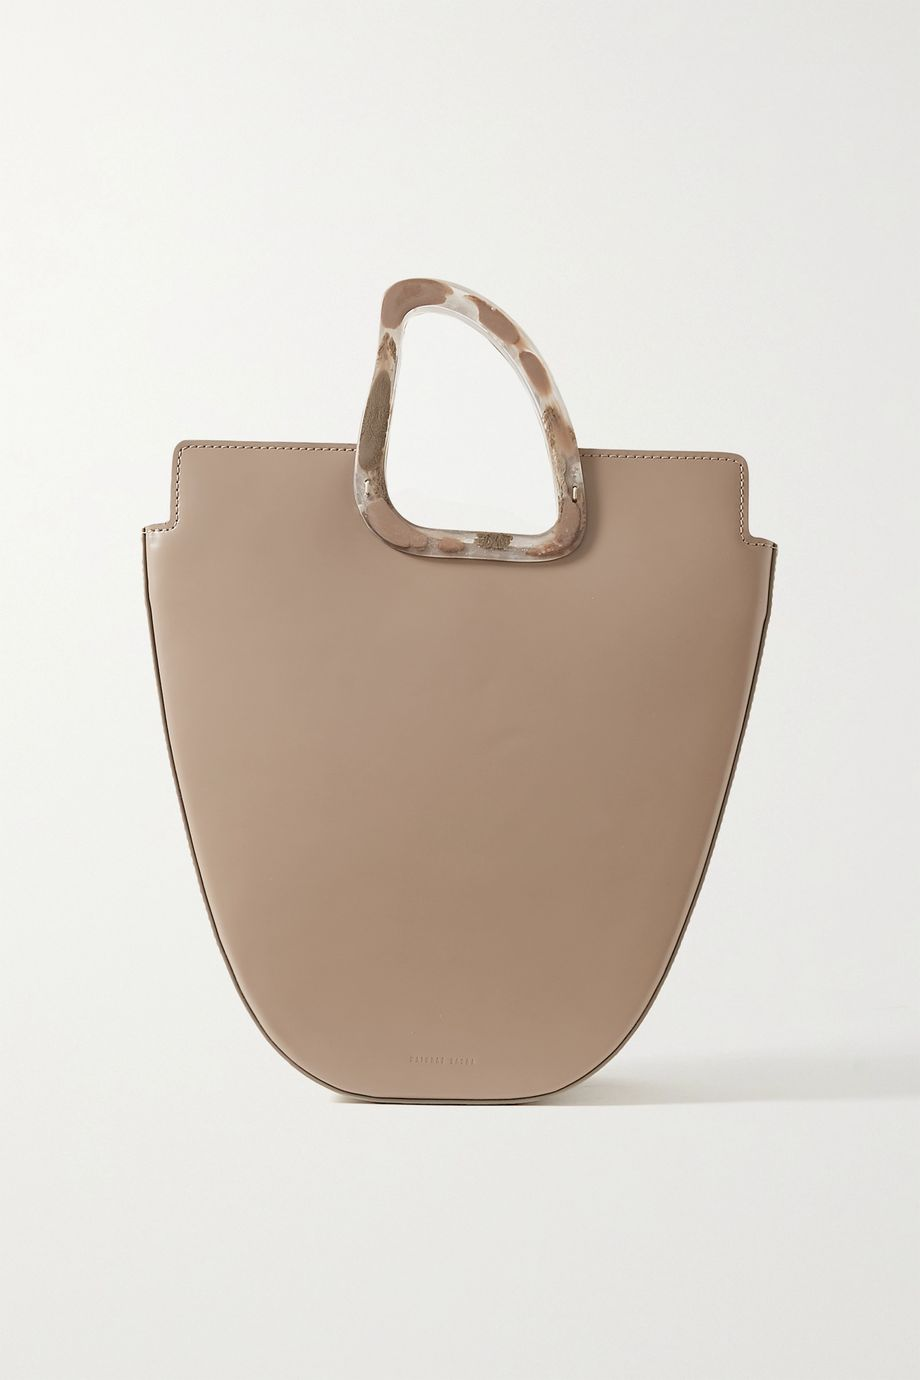 Naturae Sacra Ourea leather and resin tote